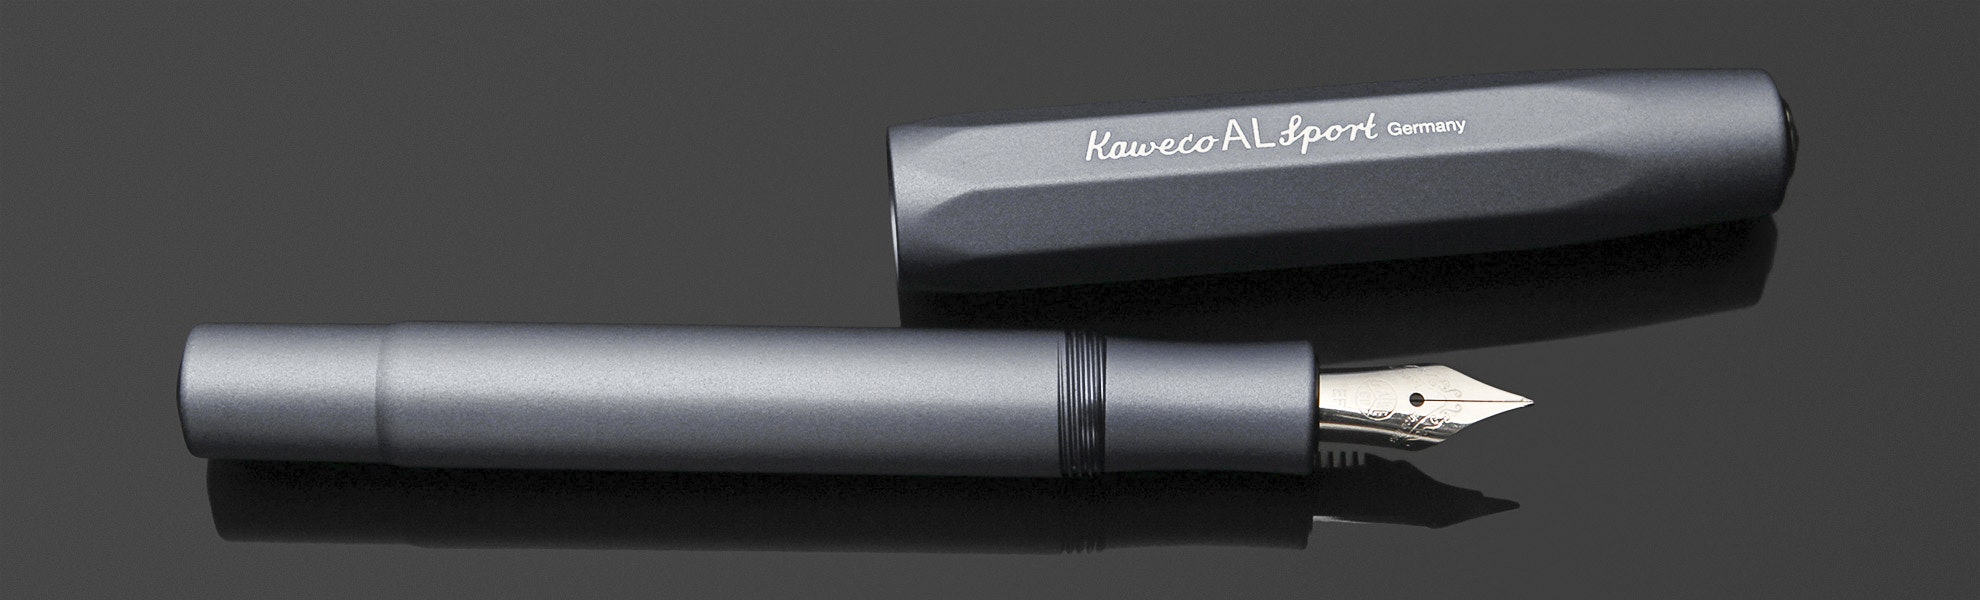 Kaweco AL Sport Fountain Pen